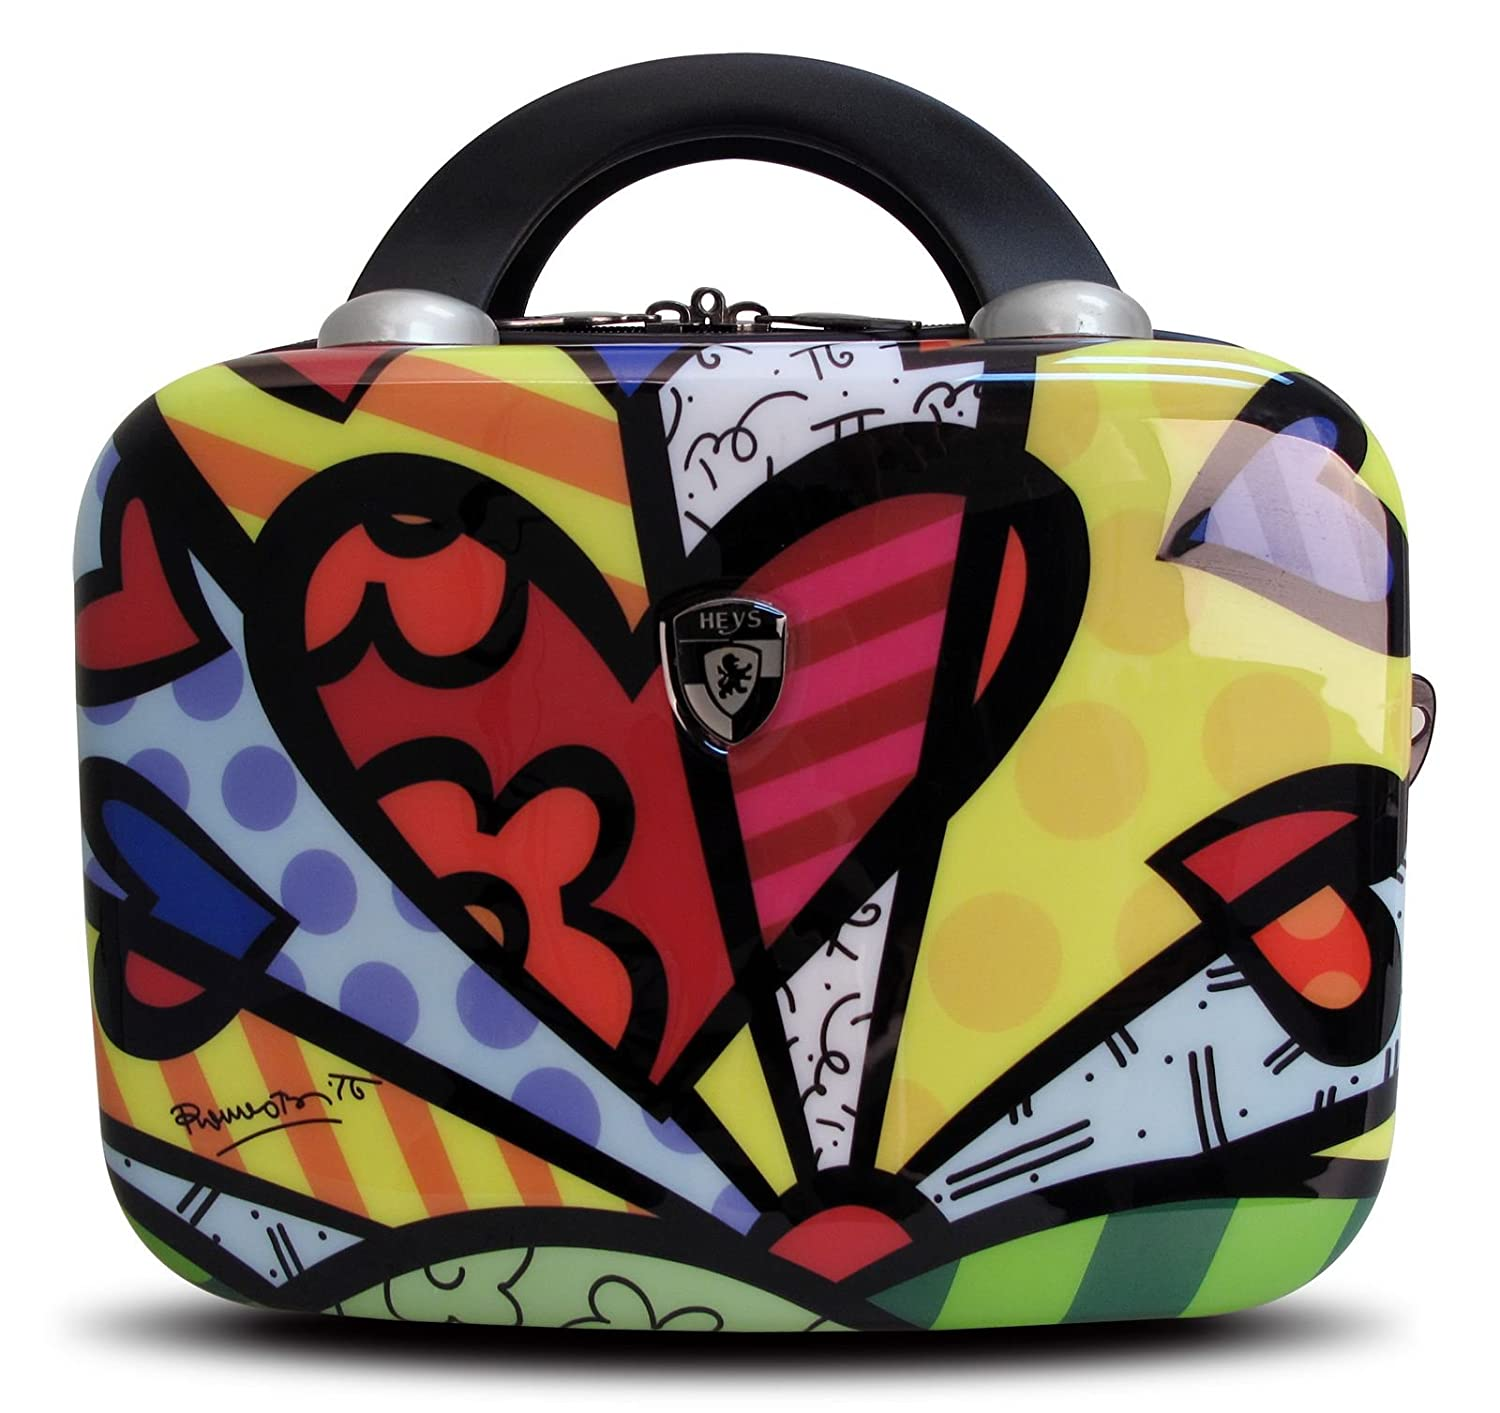 ... 50% SALE ... PREMIUM DESIGNER Hartschalen Koffer - Heys Künstler Britto A New Day - Beauty-Case